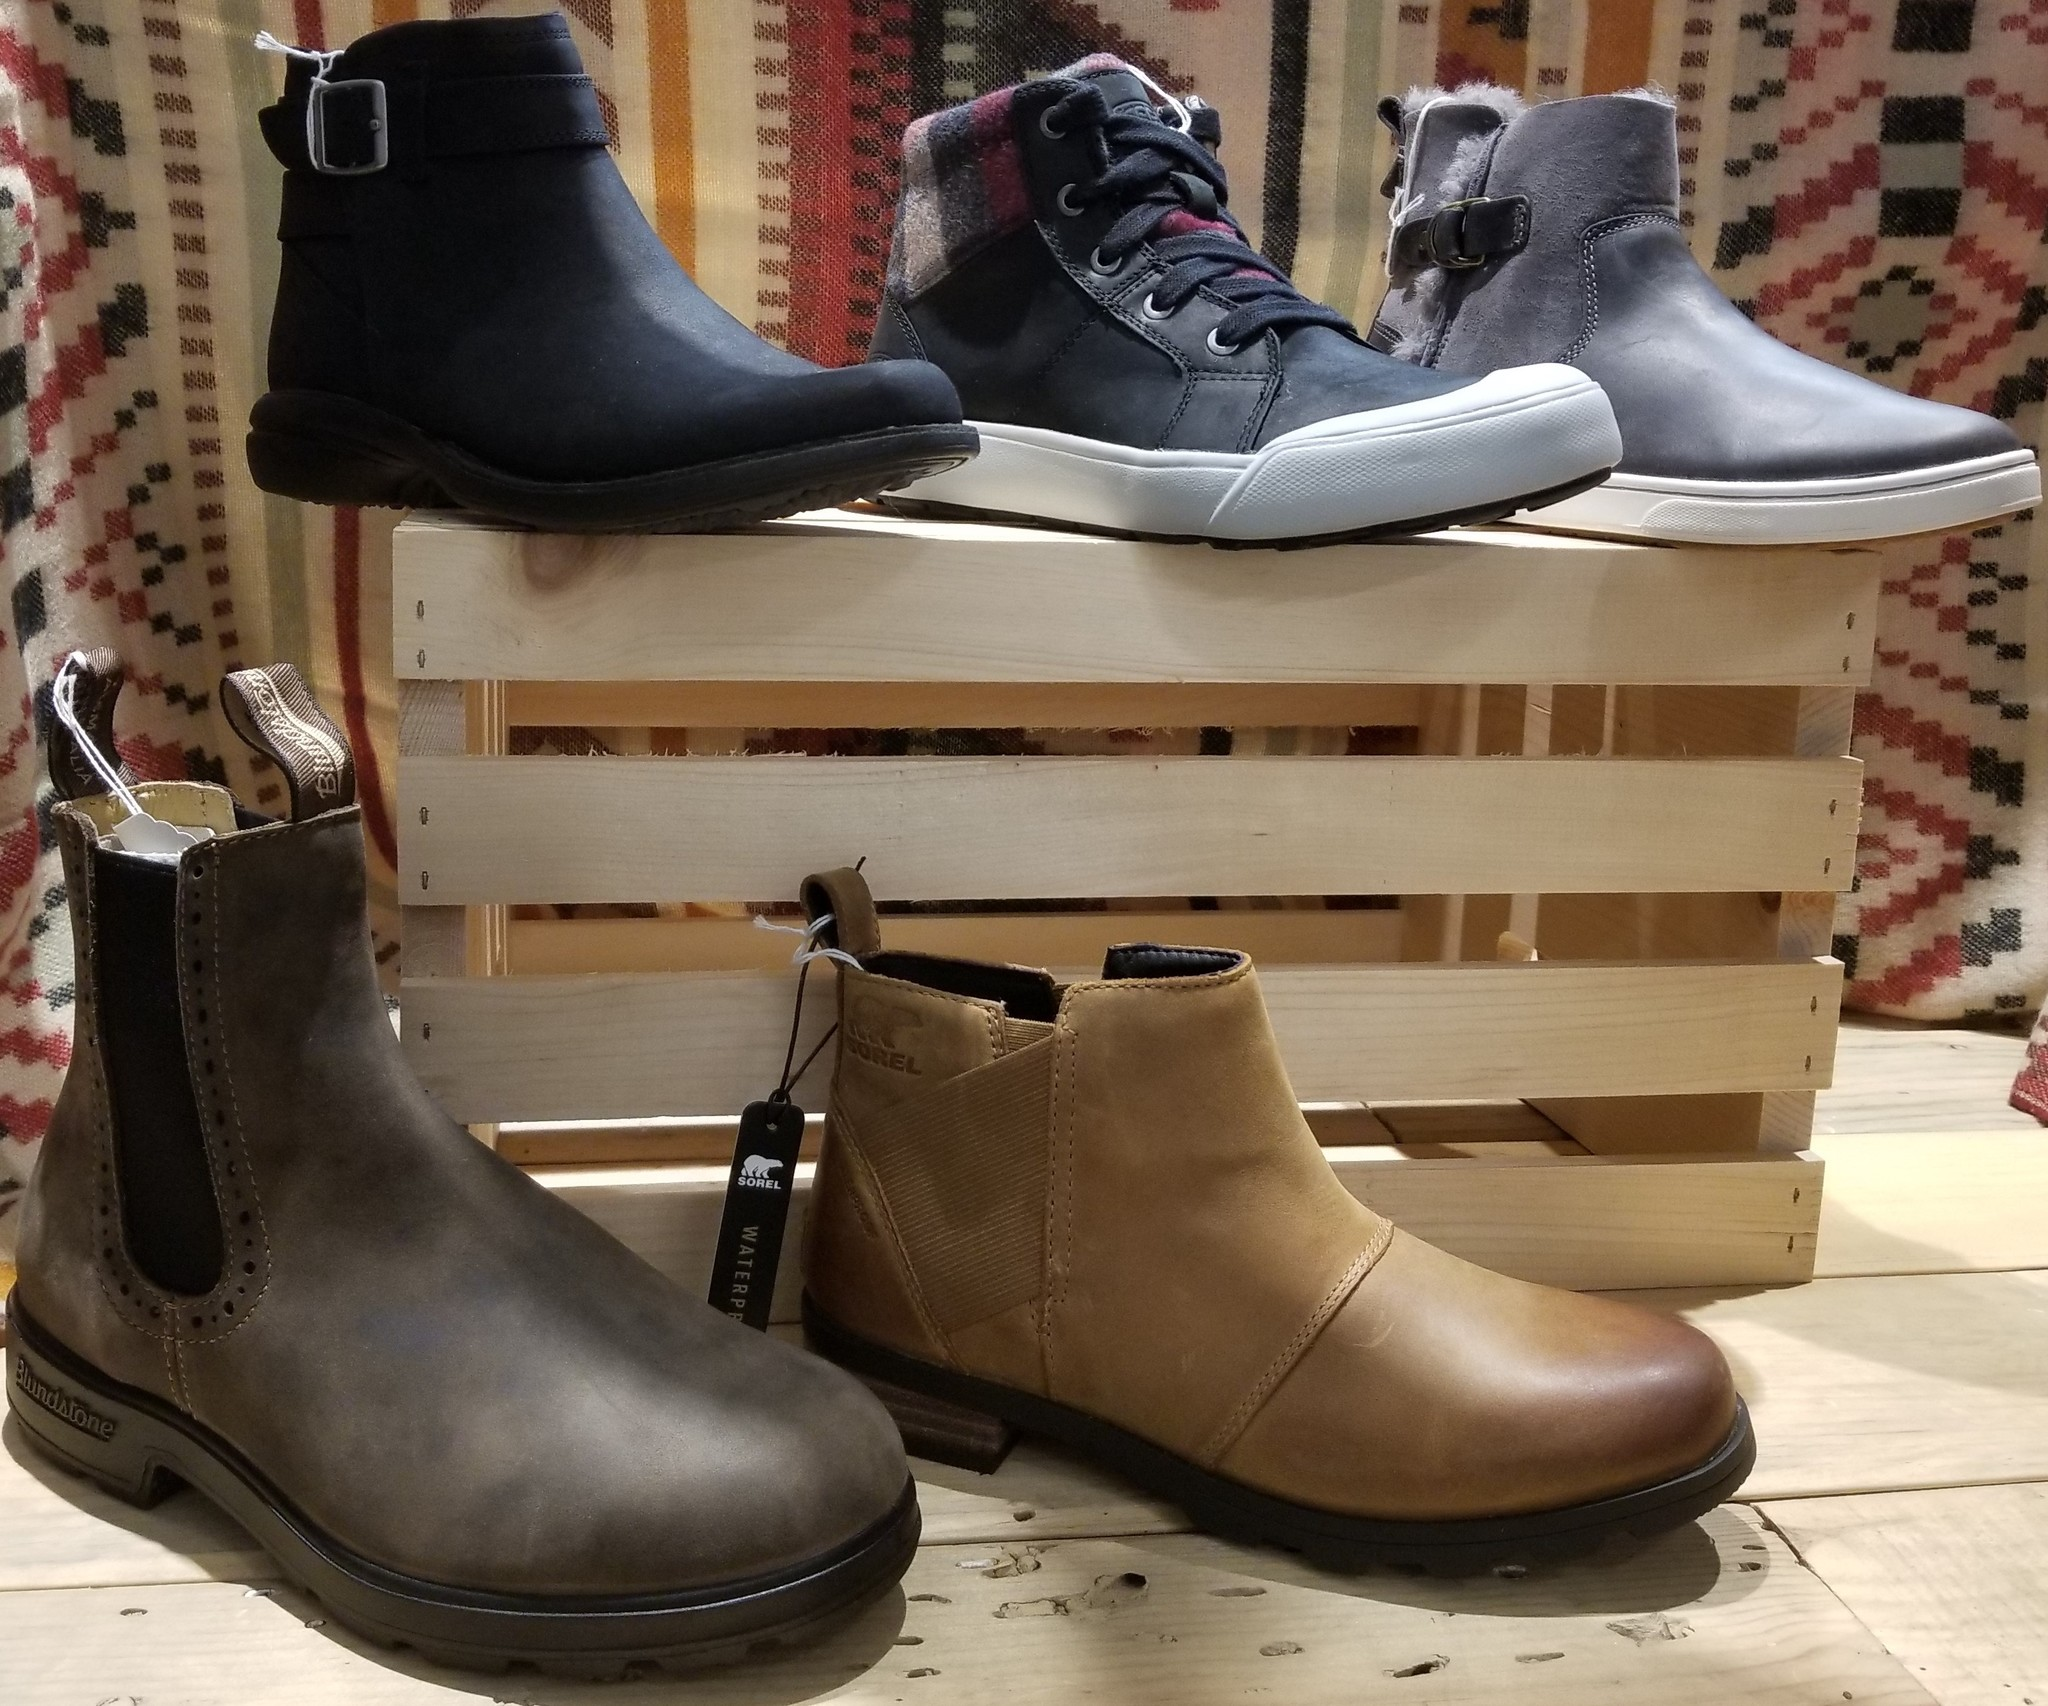 Vital Outdoor's Top Fall Boots for Women